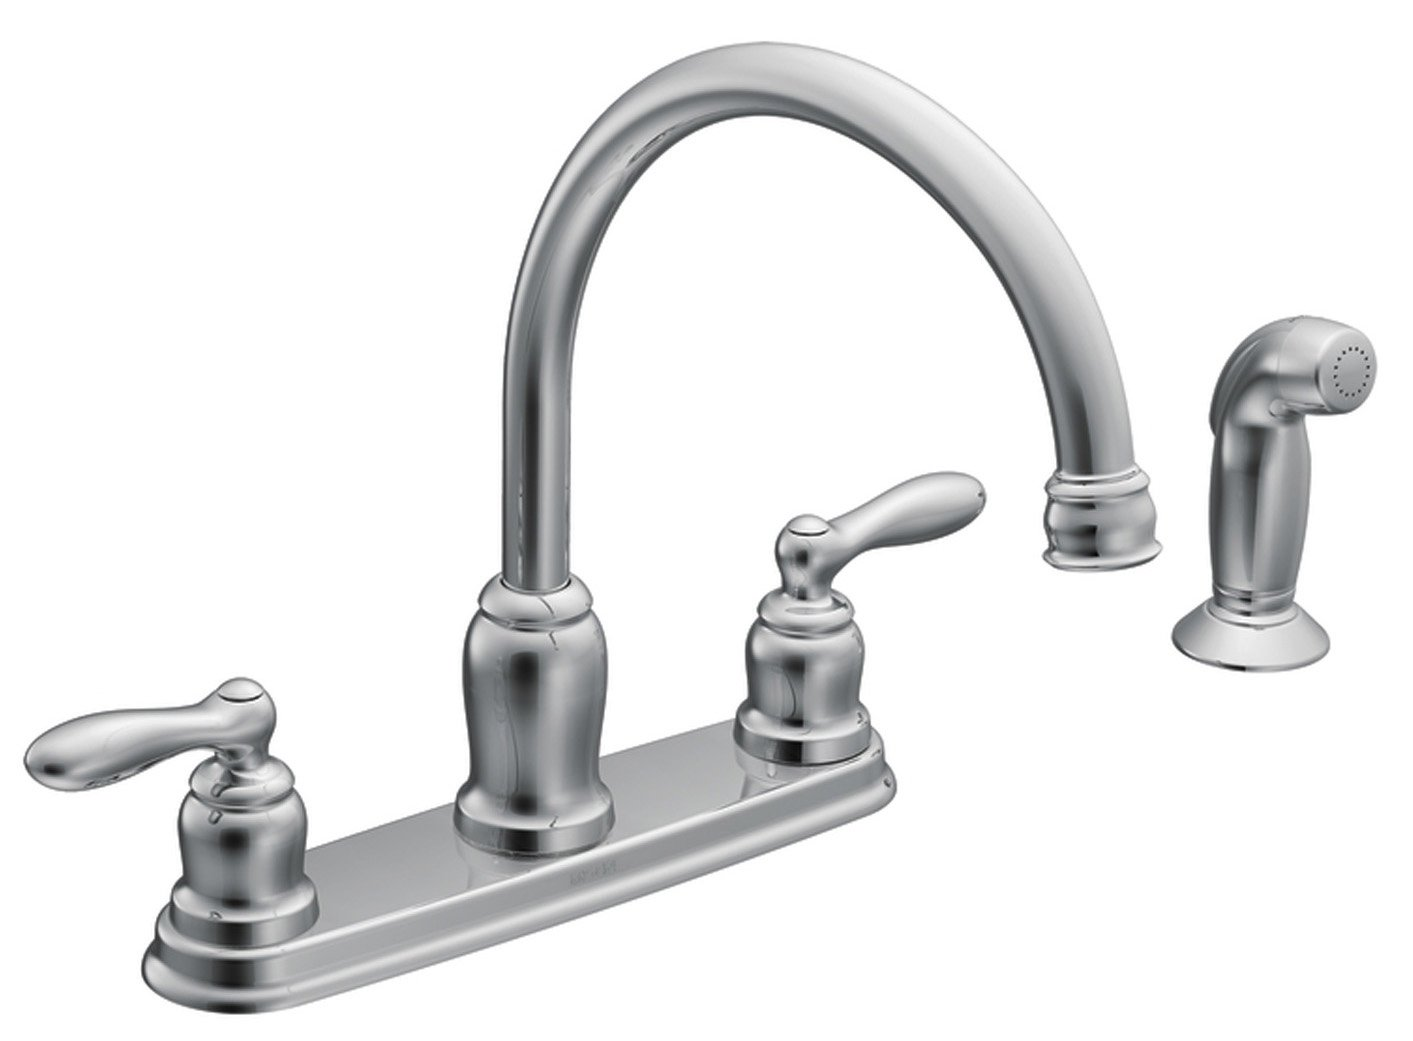 Moen ca87888 high arc kitchen faucet from the caldwell collection chrome touch on kitchen sink faucets amazon com